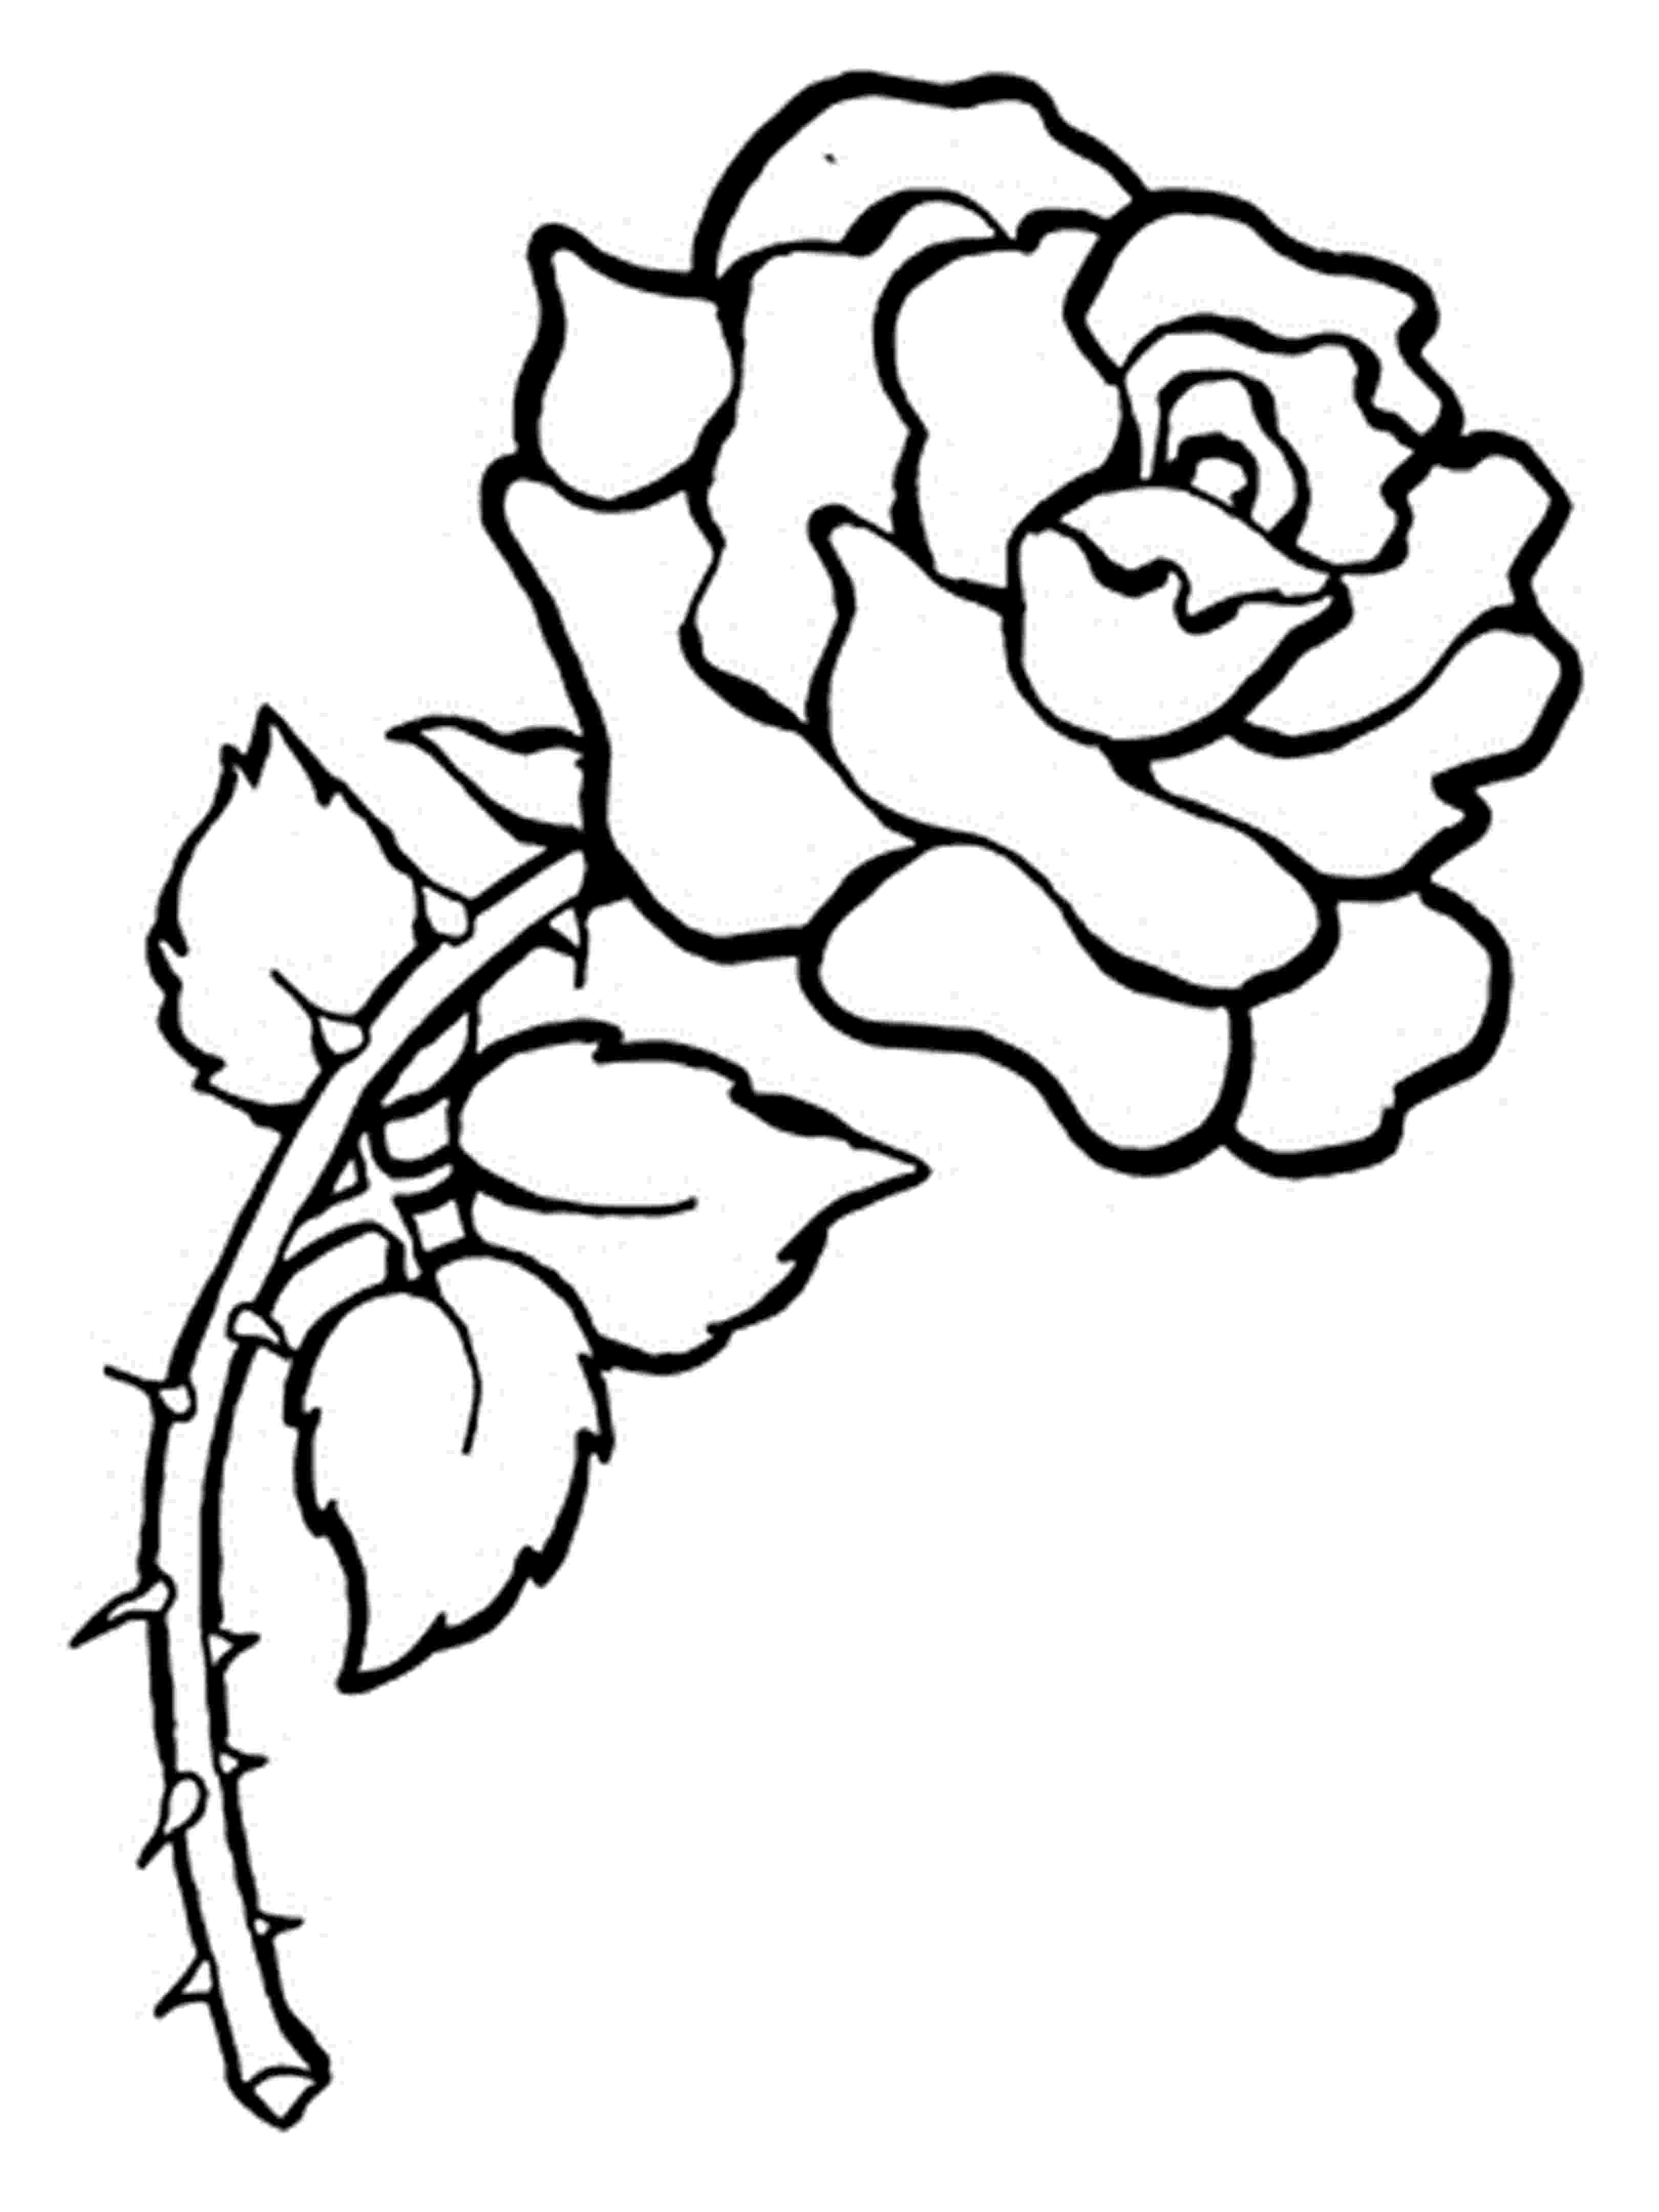 printable flower coloring pages free printable flower coloring pages for kids best coloring flower printable pages 1 2